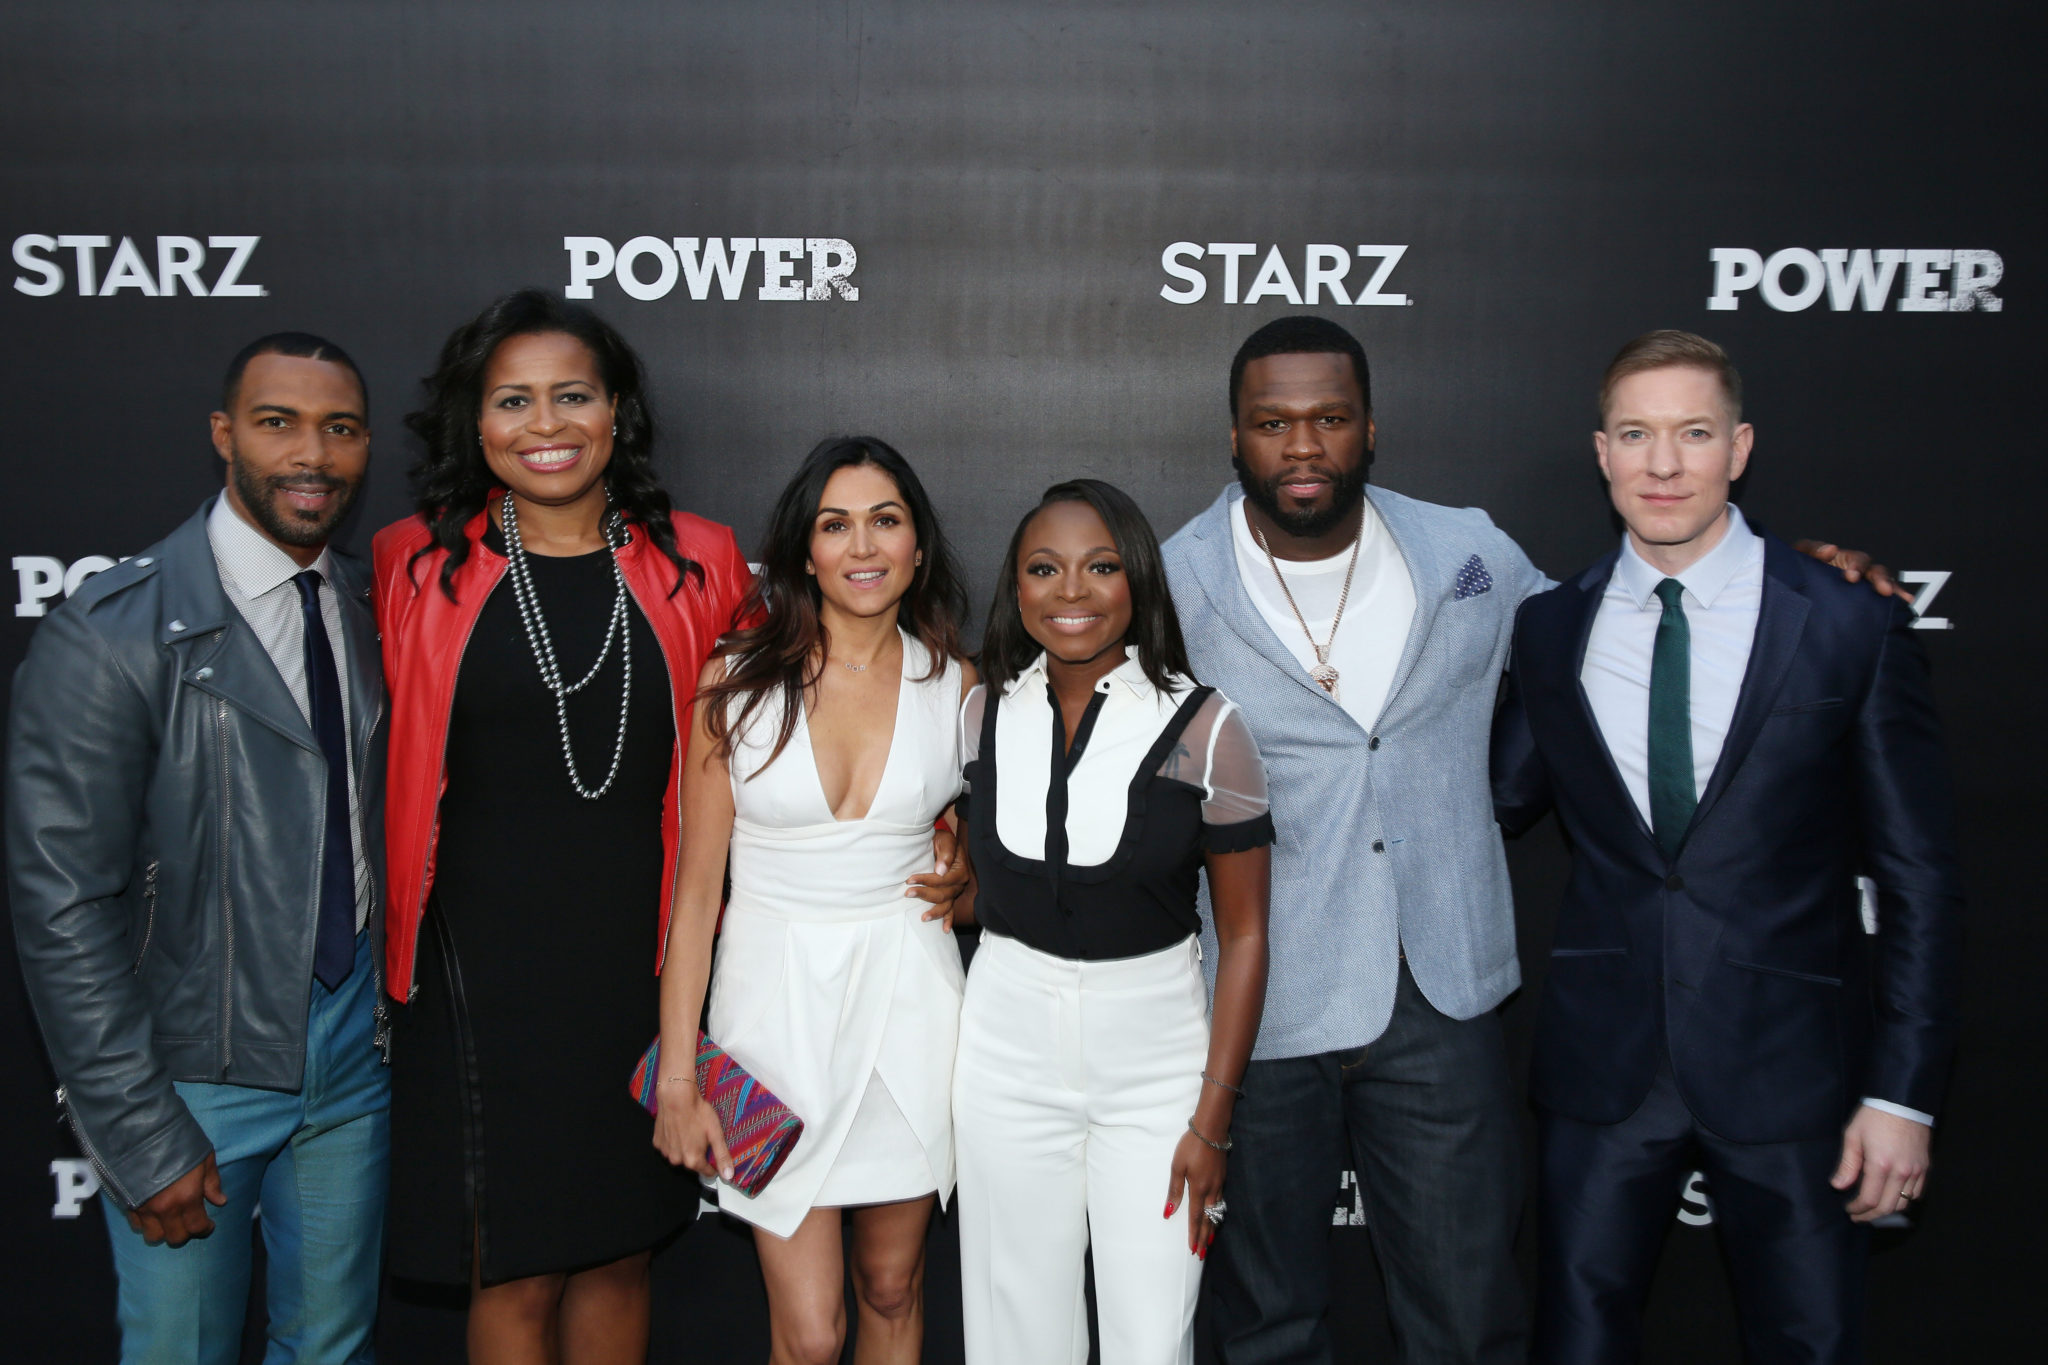 STARZ Host Panel With Cast of Hit Series 'Power'